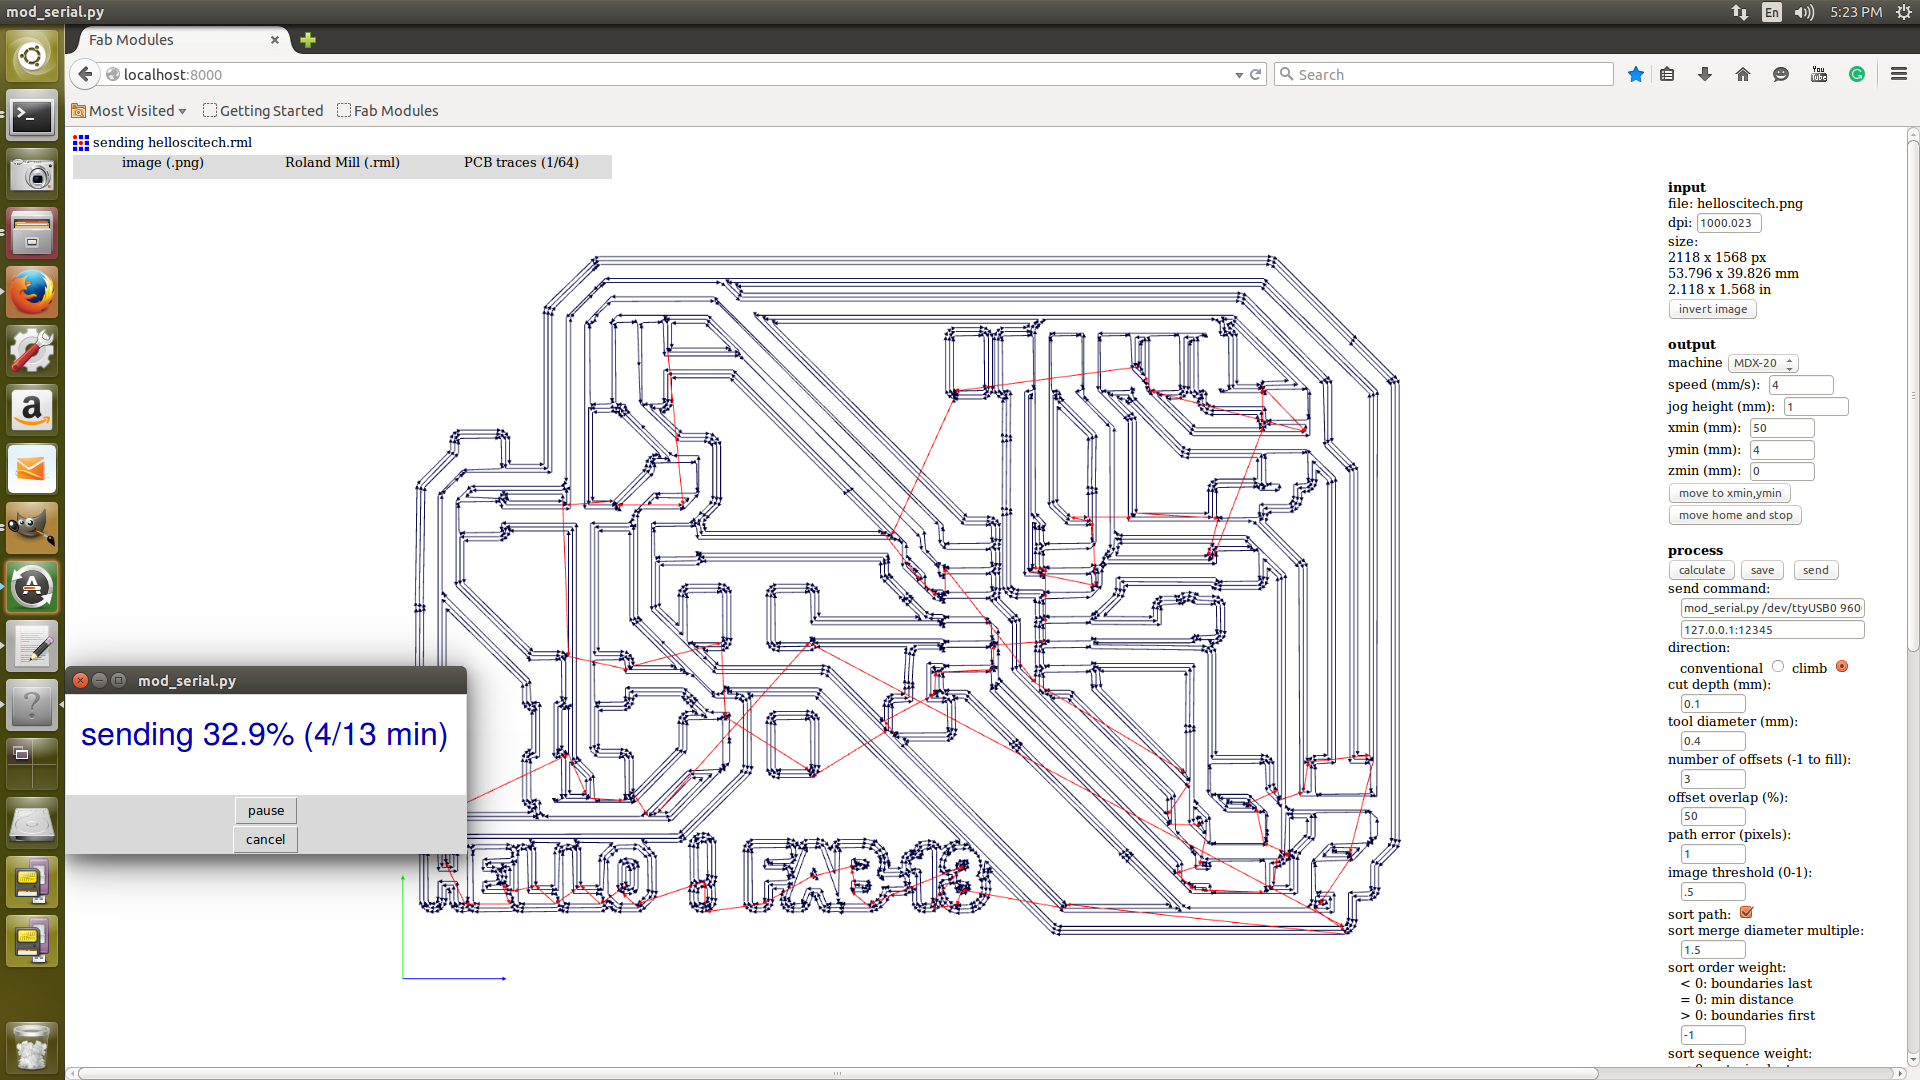 Fab Dairy Syed Junaid Ahmed Technical Expresspcb Schematic And Pcb Design Software New Version The Milling Was Half Way